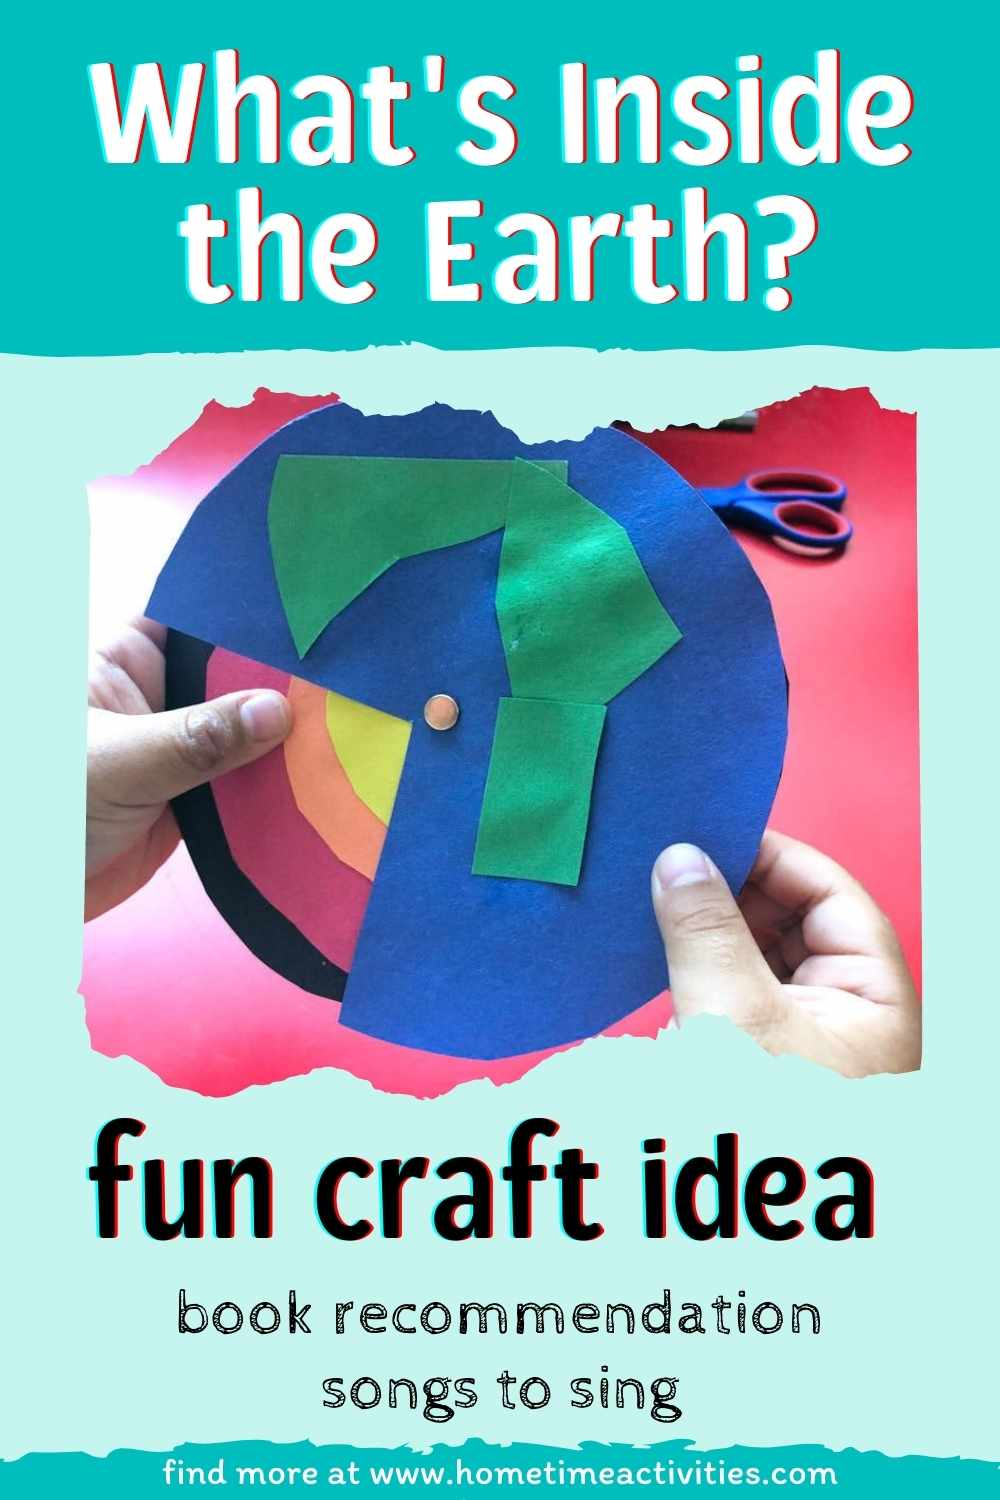 What's Inside The Earth - Picture of craft and description of activities in the post